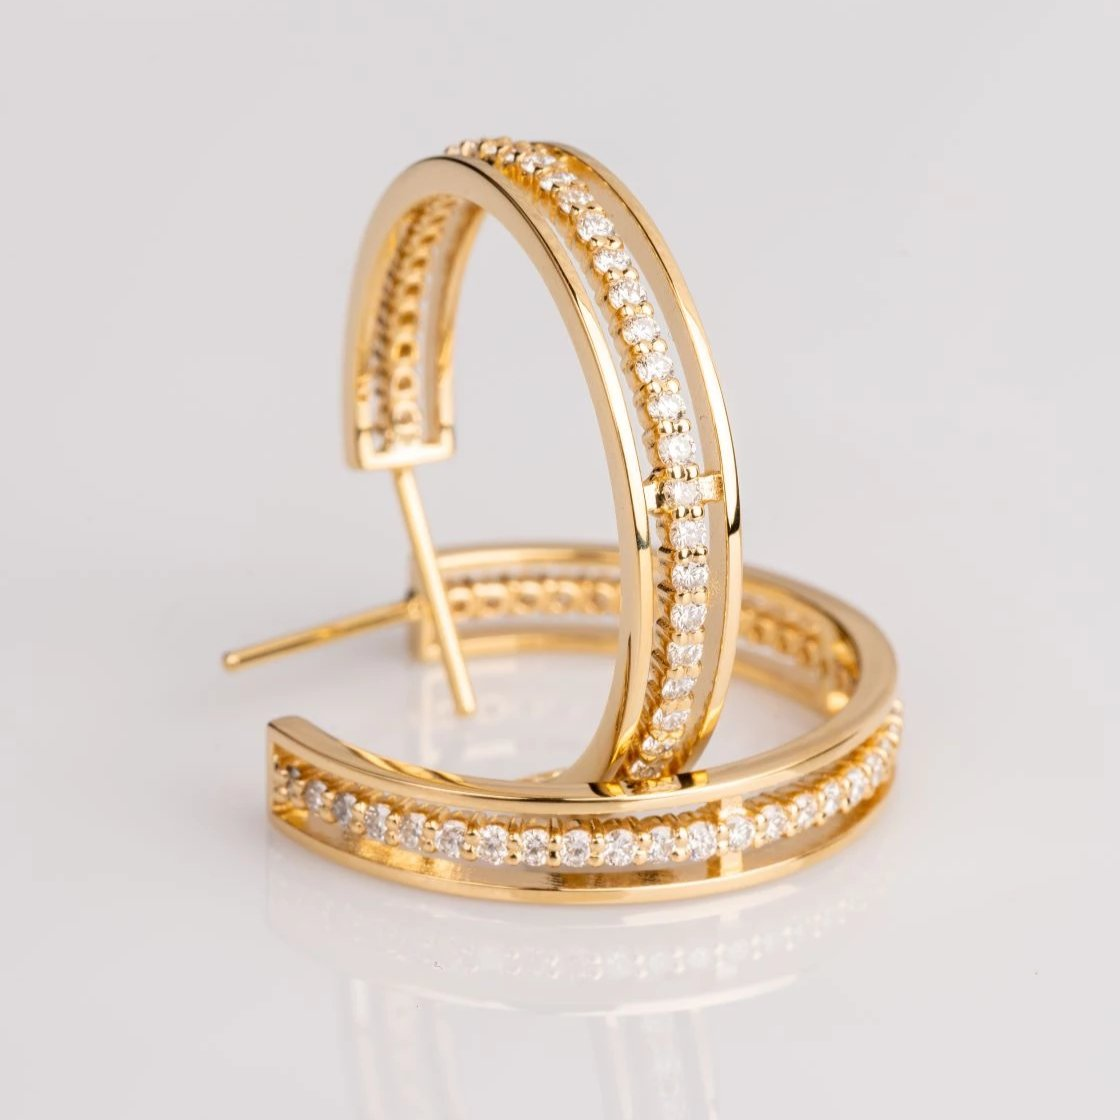 18k yellow gold floating eternity hoops, sydney strong, Greenville, South Carolina